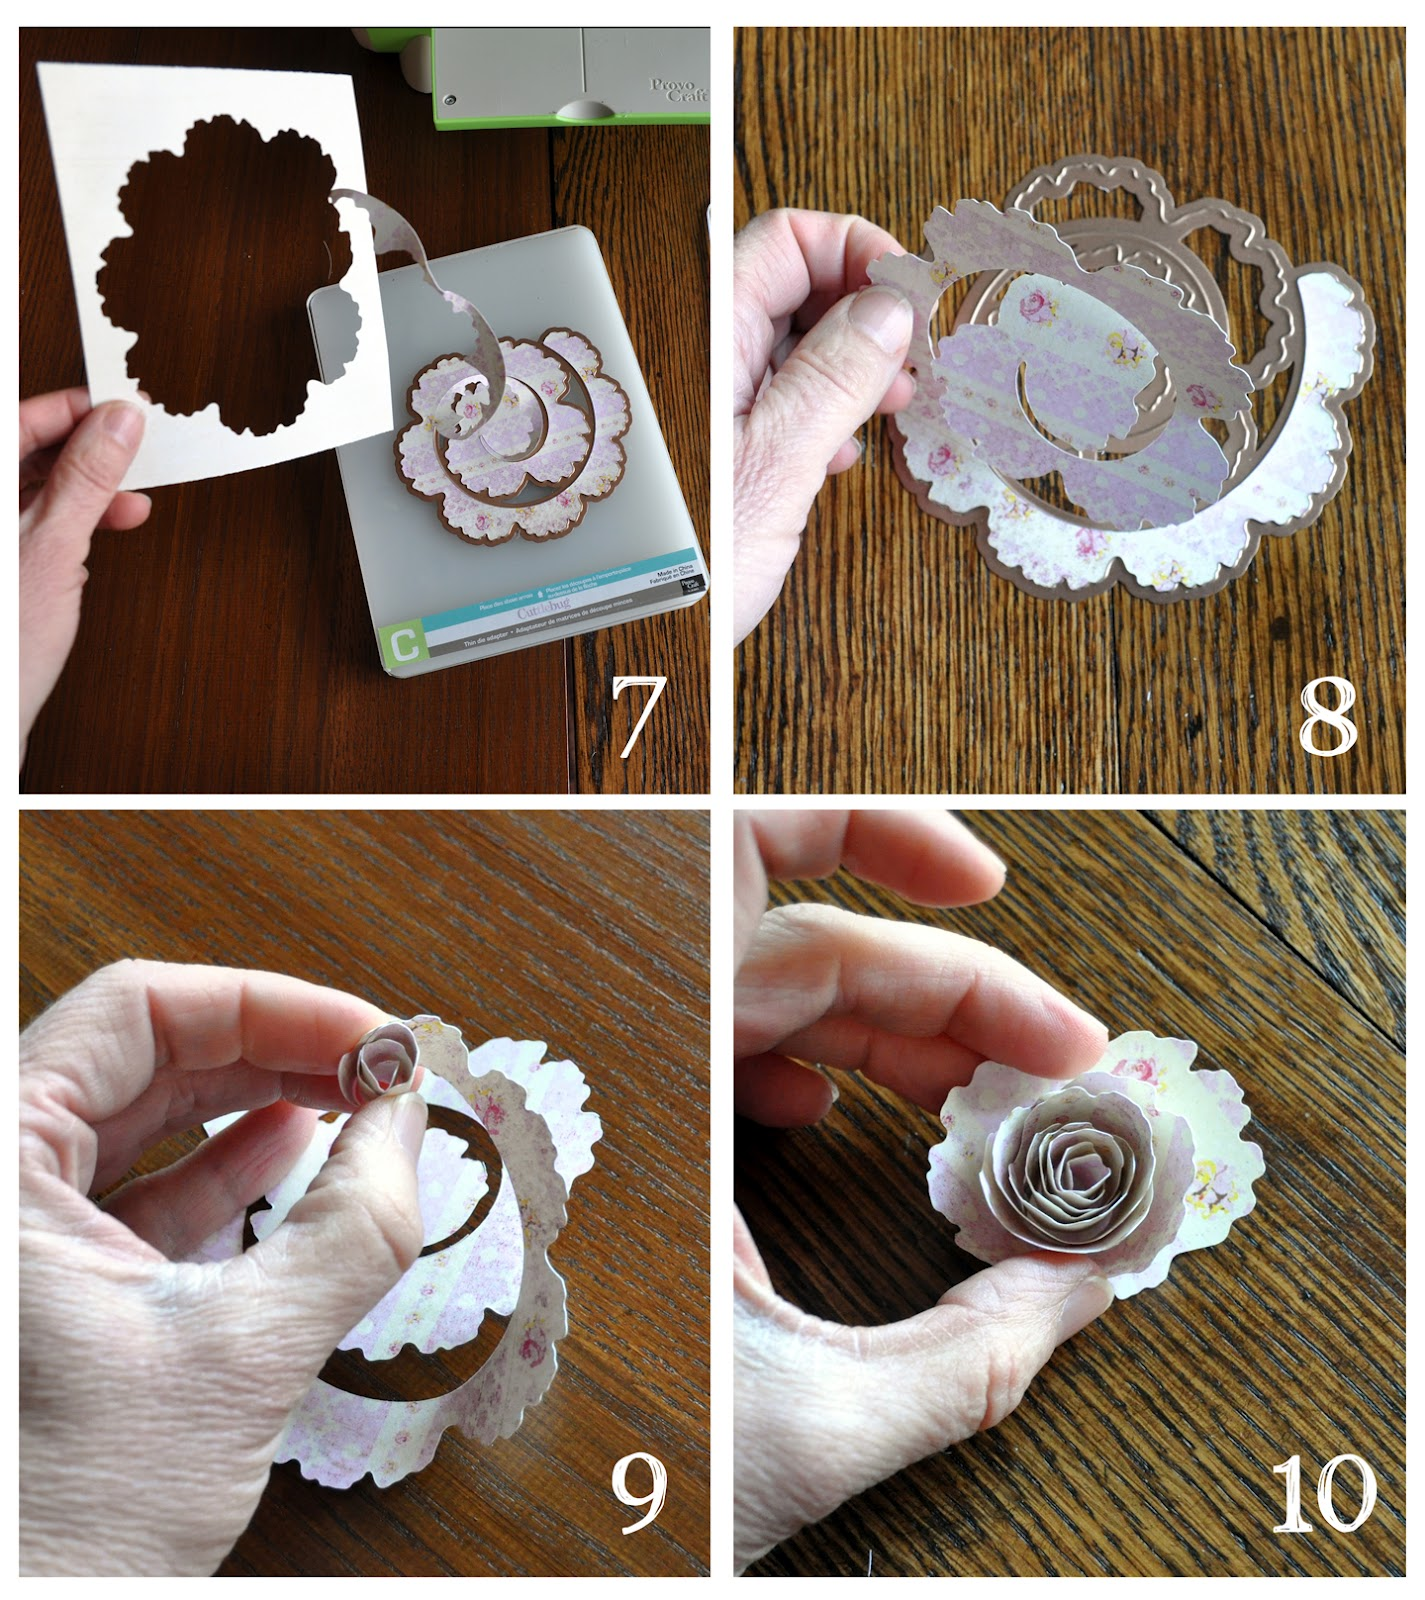 Lorrie everitt studio paper flowers using the spellbinder flower remove the scrap paper from the die and 8 carefully remove your cut flower shape from the die 9 to form the flower start with the smaller end of the die mightylinksfo